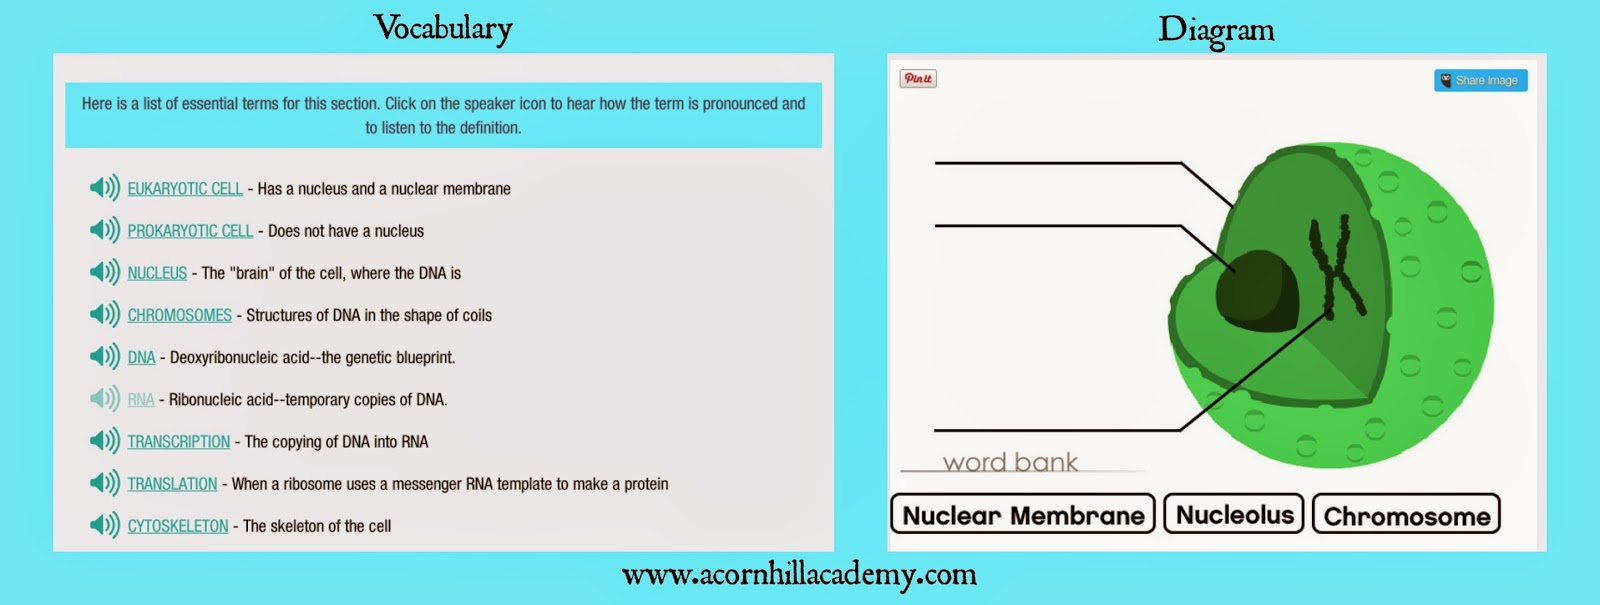 Acorn hill academy review standard deviants accelerate the vocabulary list has an audio clip available for each word and the list with definition is printable the diagram has drag and drop words to match malvernweather Images